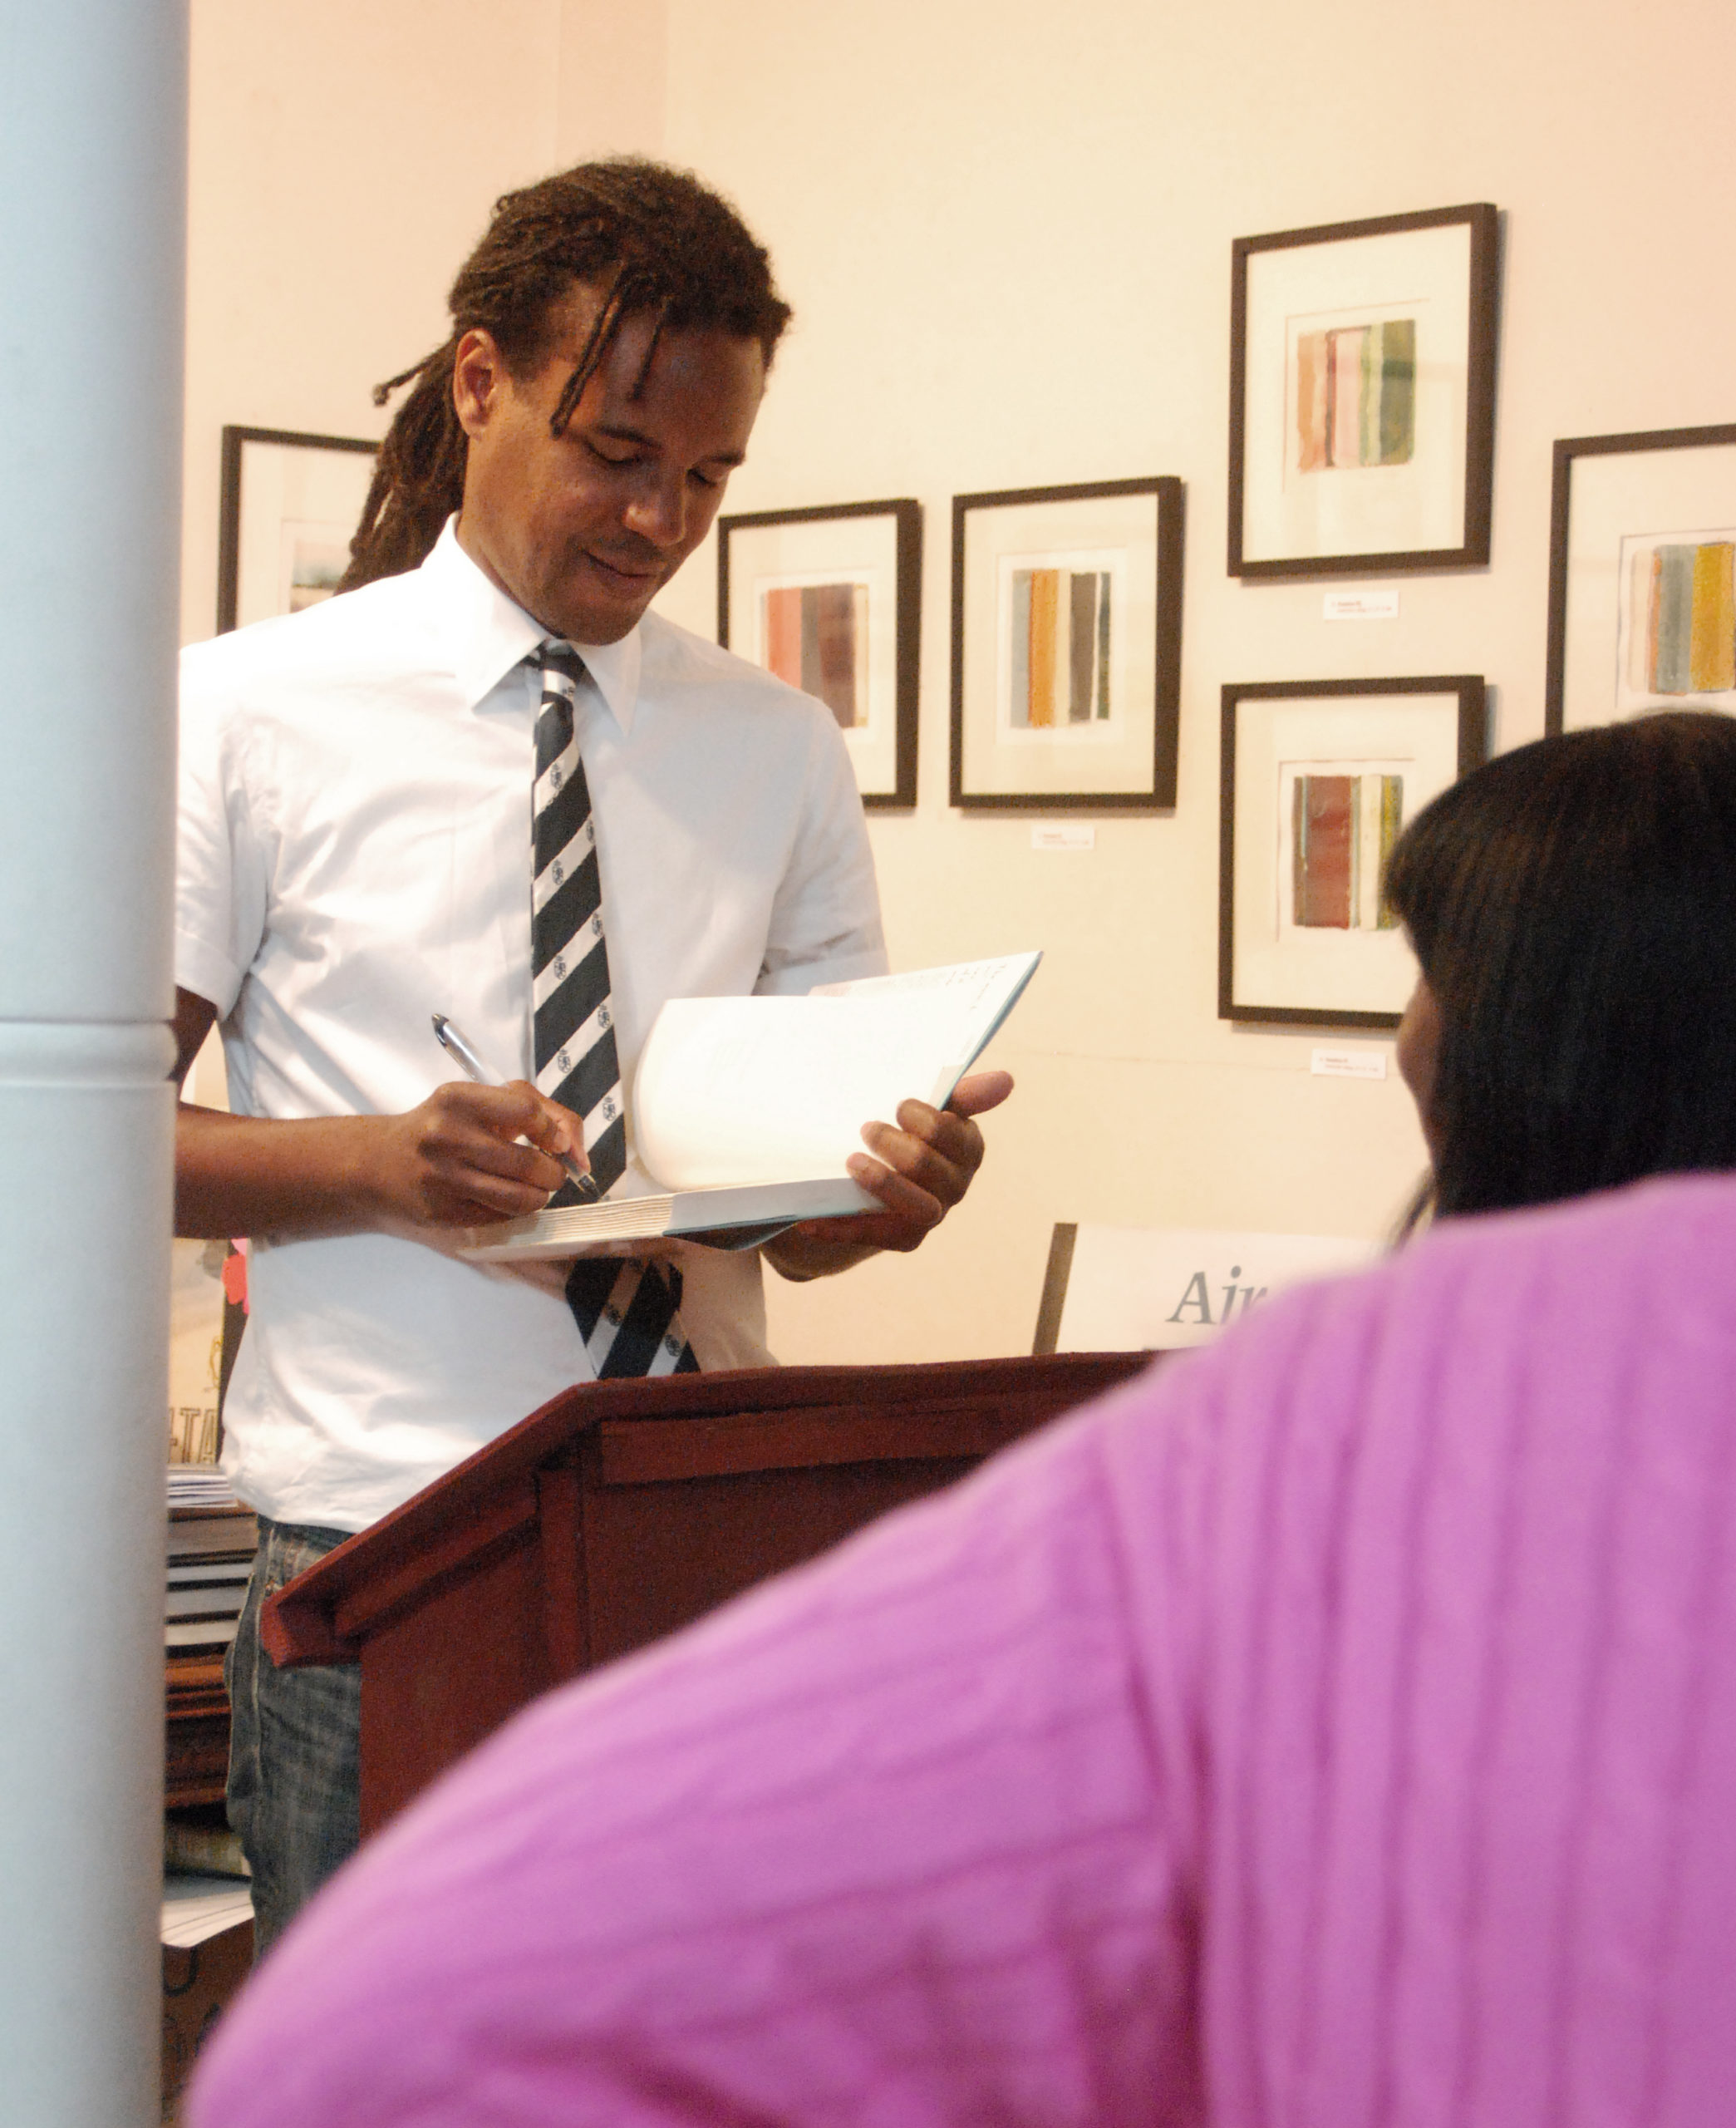 Colson Whitehead read at Canio's in 2009. KATHRYN SZOKA